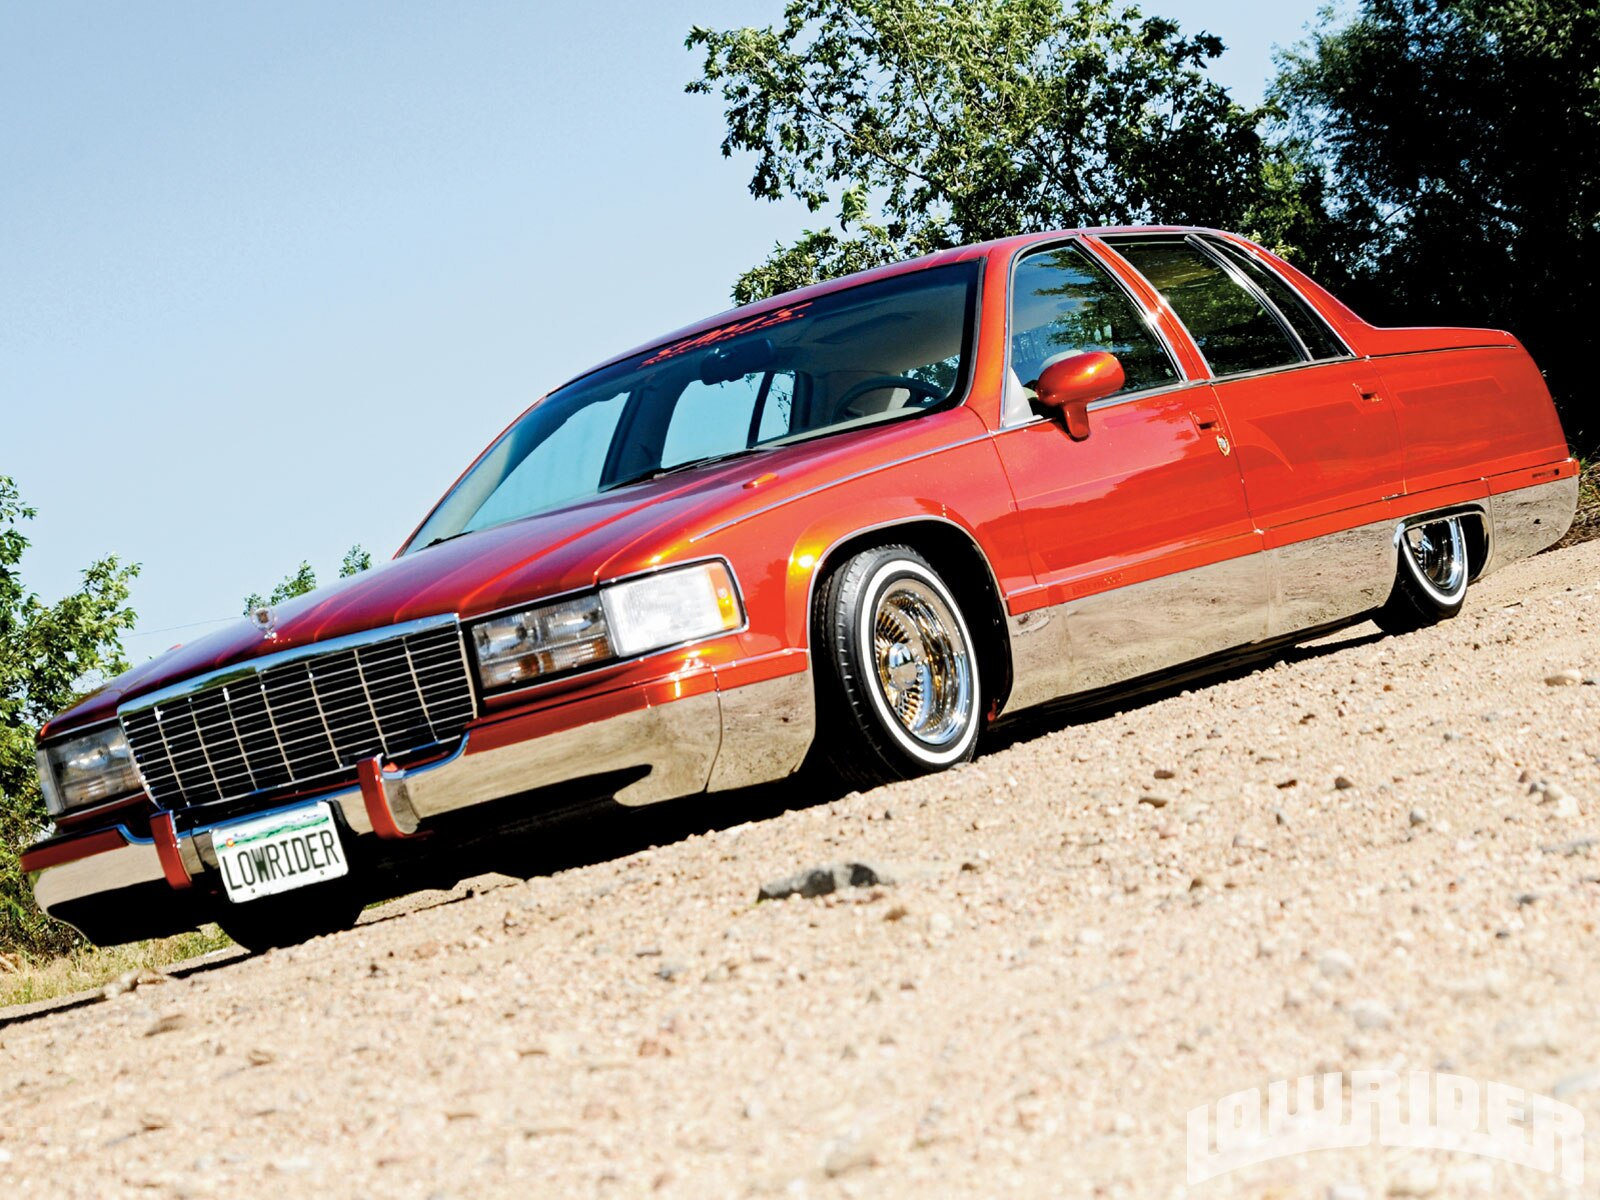 1004 lrmp 02 o 1993 cadillac fleetwood front left. Cars Review. Best American Auto & Cars Review